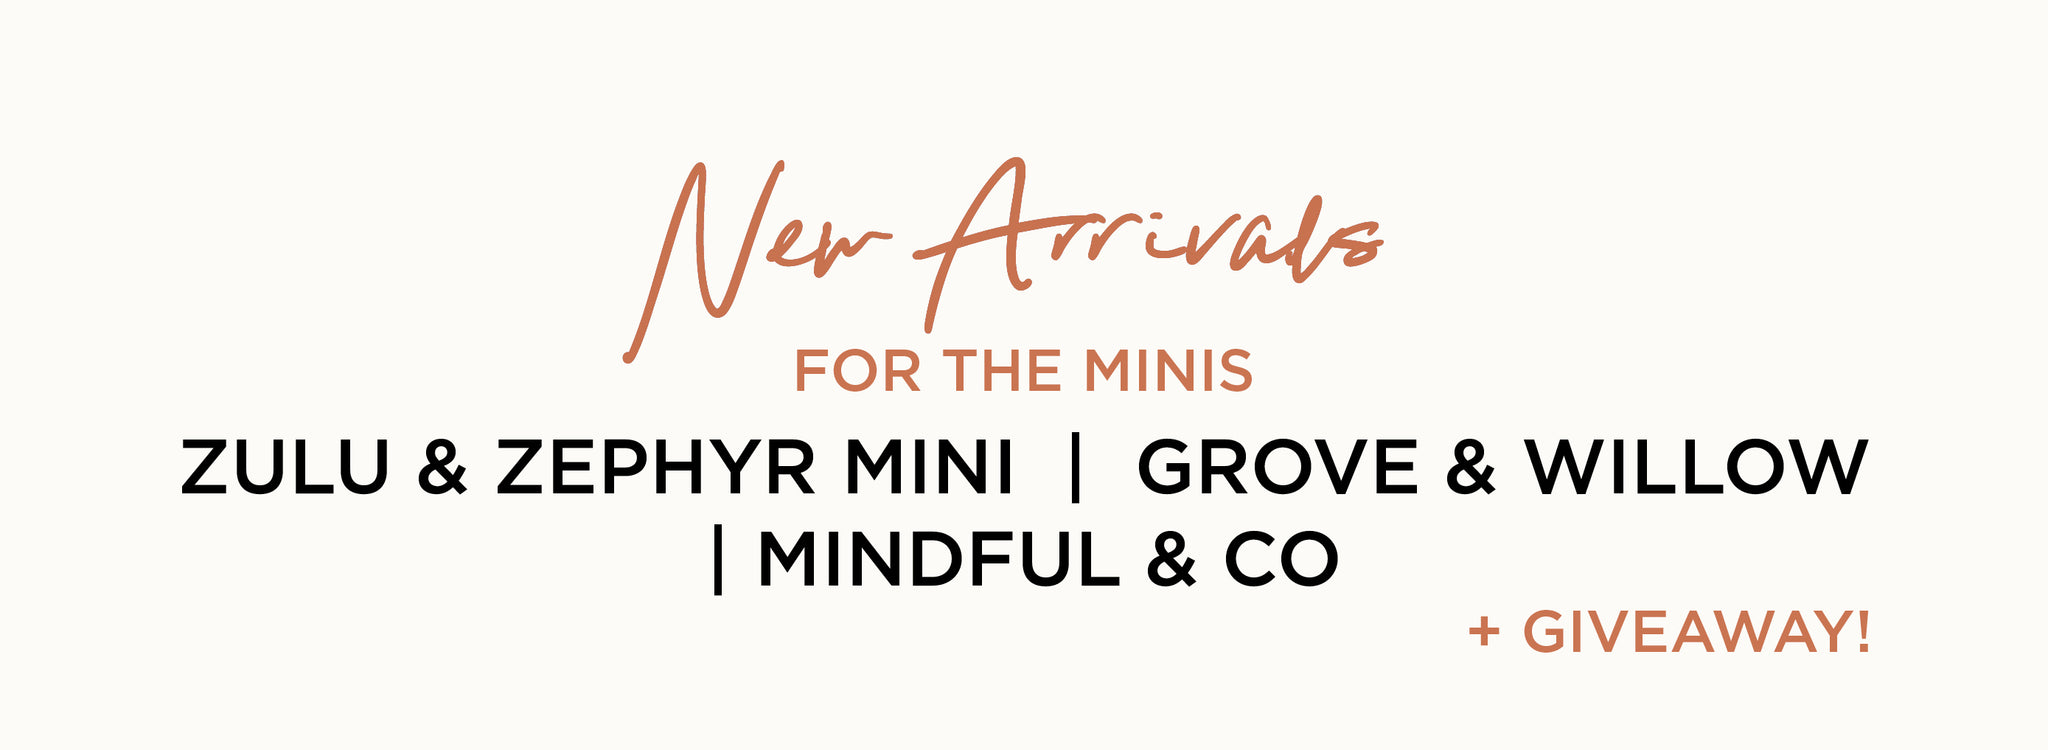 Paper Plane - New Arrivals - For the minis - Plus Giveaway